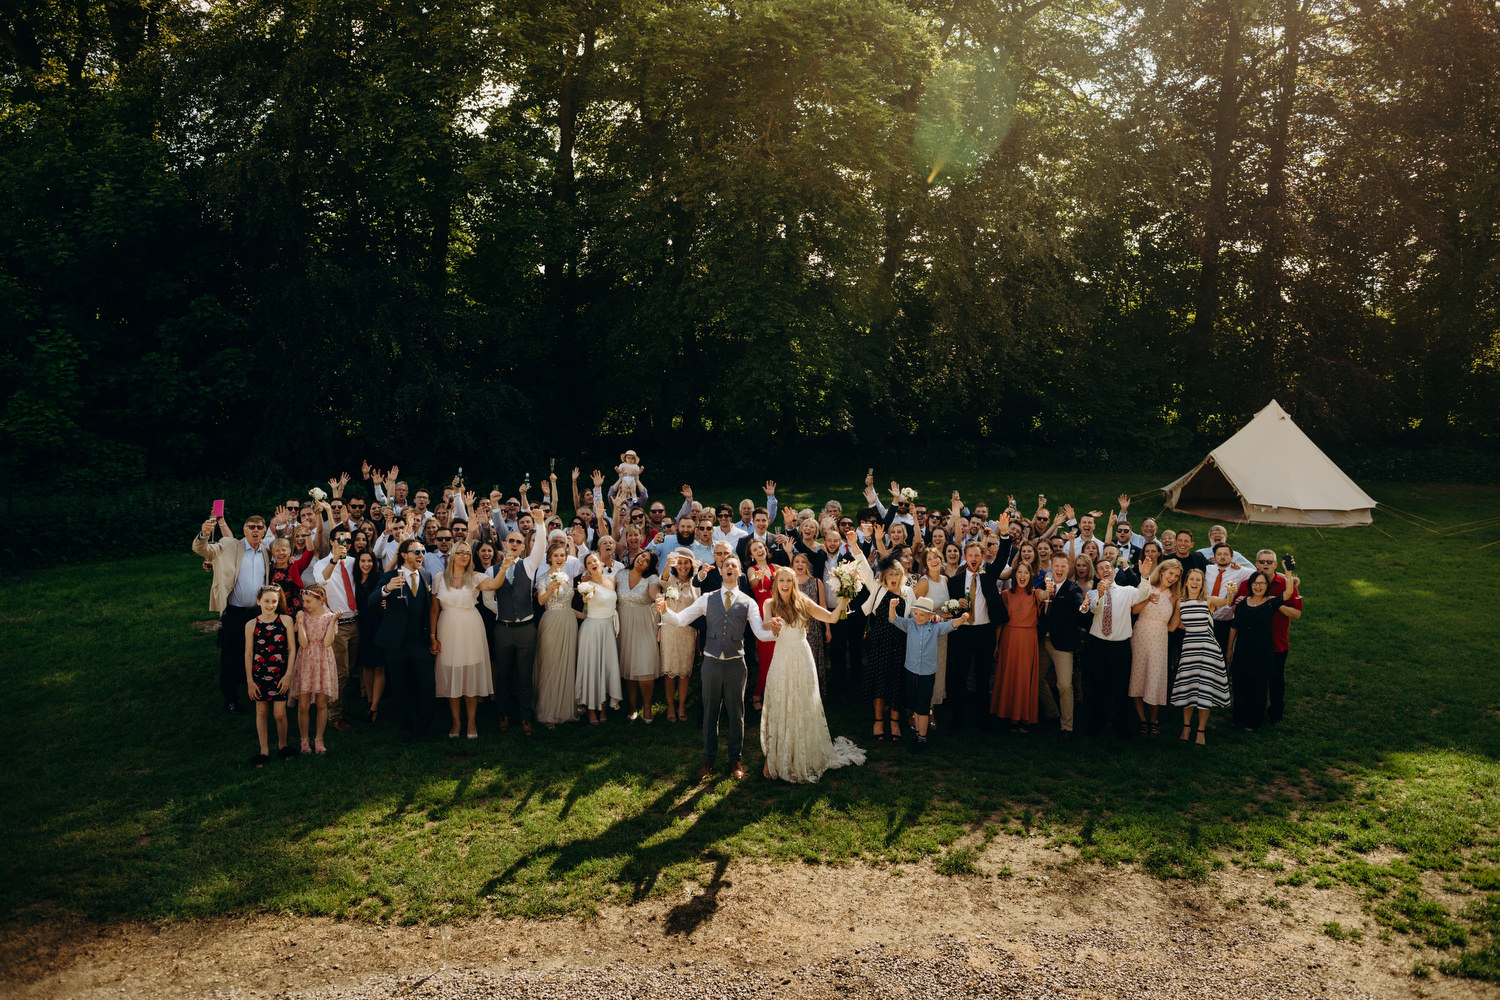 group photograph at wick bottom barn wedding